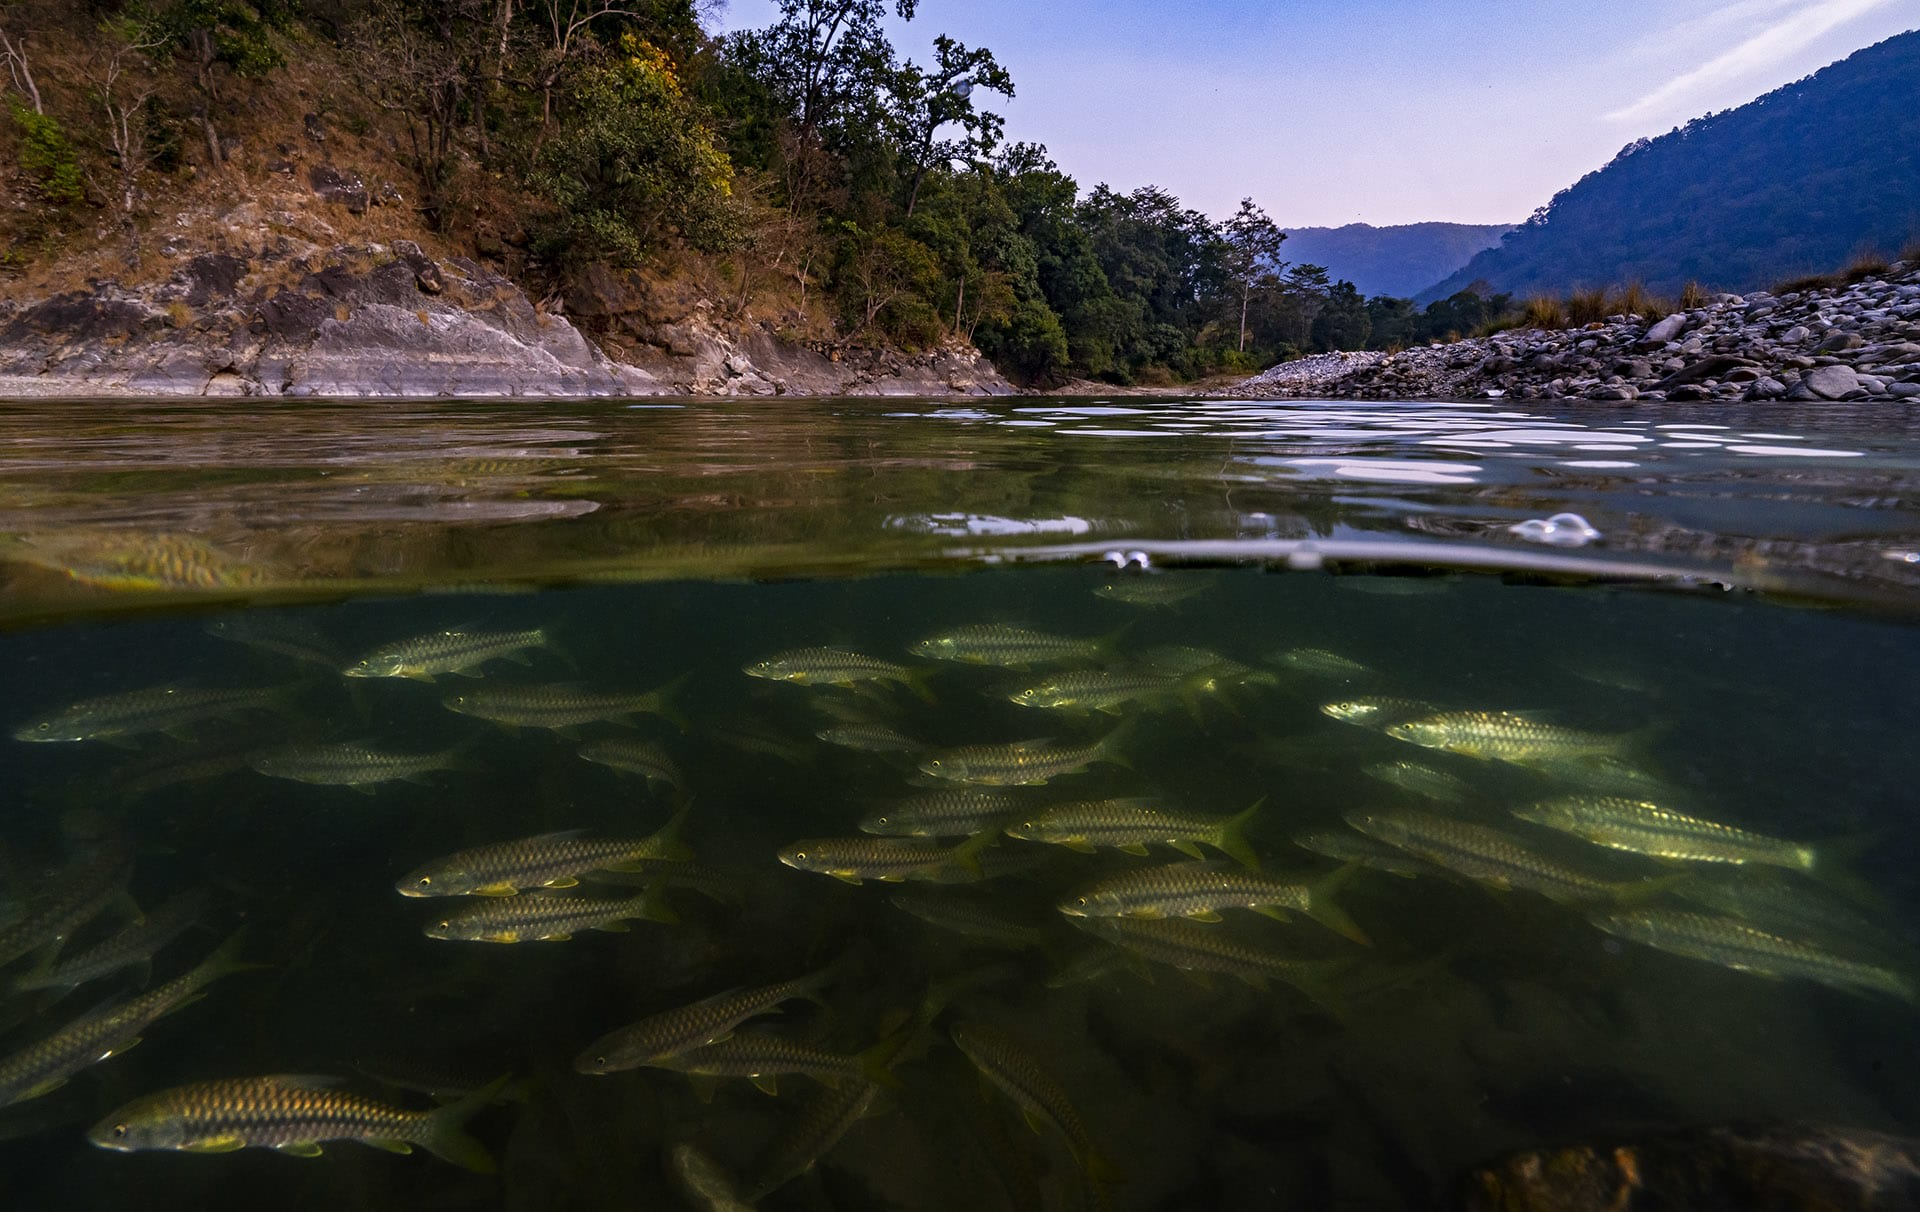 """Dr Atkore believes that policy-level change is the need of the hour. """"If both state and central government accord it special status i.e. Schedule-I in the Wildlife Protection Act (1972), this will help sustain the population in the future and curb illegal and destructive fishing practices.""""  Additionally, restoring mahseer habitat, protecting migratory routes, rejecting new dams, and creating conservation reserves to safeguard their genetic stocks, would also be helpful. """"Local communities, as well as some of the temple authorities (small and large) in Uttarakhand, have been conserving the mahseer's habitat and population for many decades now,"""" says Dr Atkore. """"Acknowledging and encouraging their efforts might help sustain the population of this majestic species in their native habitat."""""""